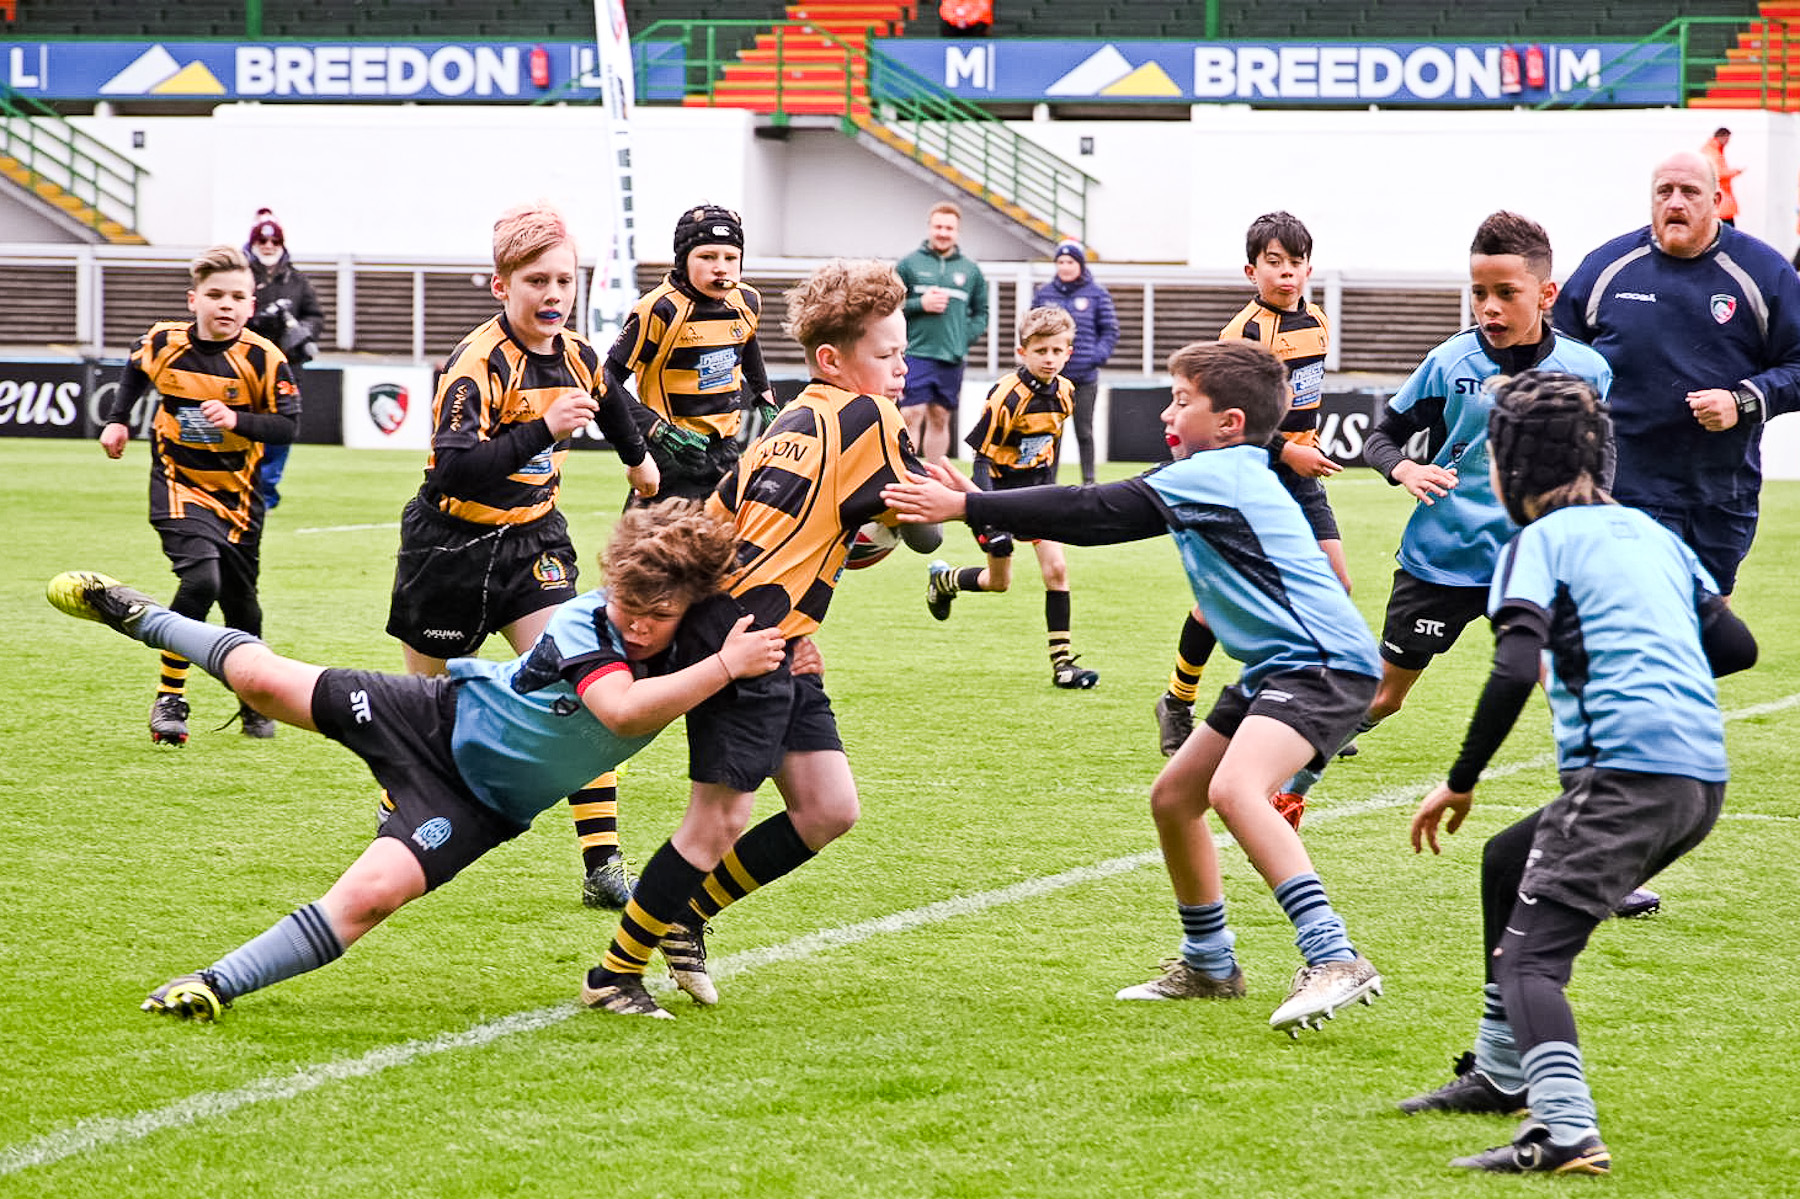 Woodbridge U10s win Prima Cup Bowl at Welford Rd 28_4_19-84686 - Copy.jpg